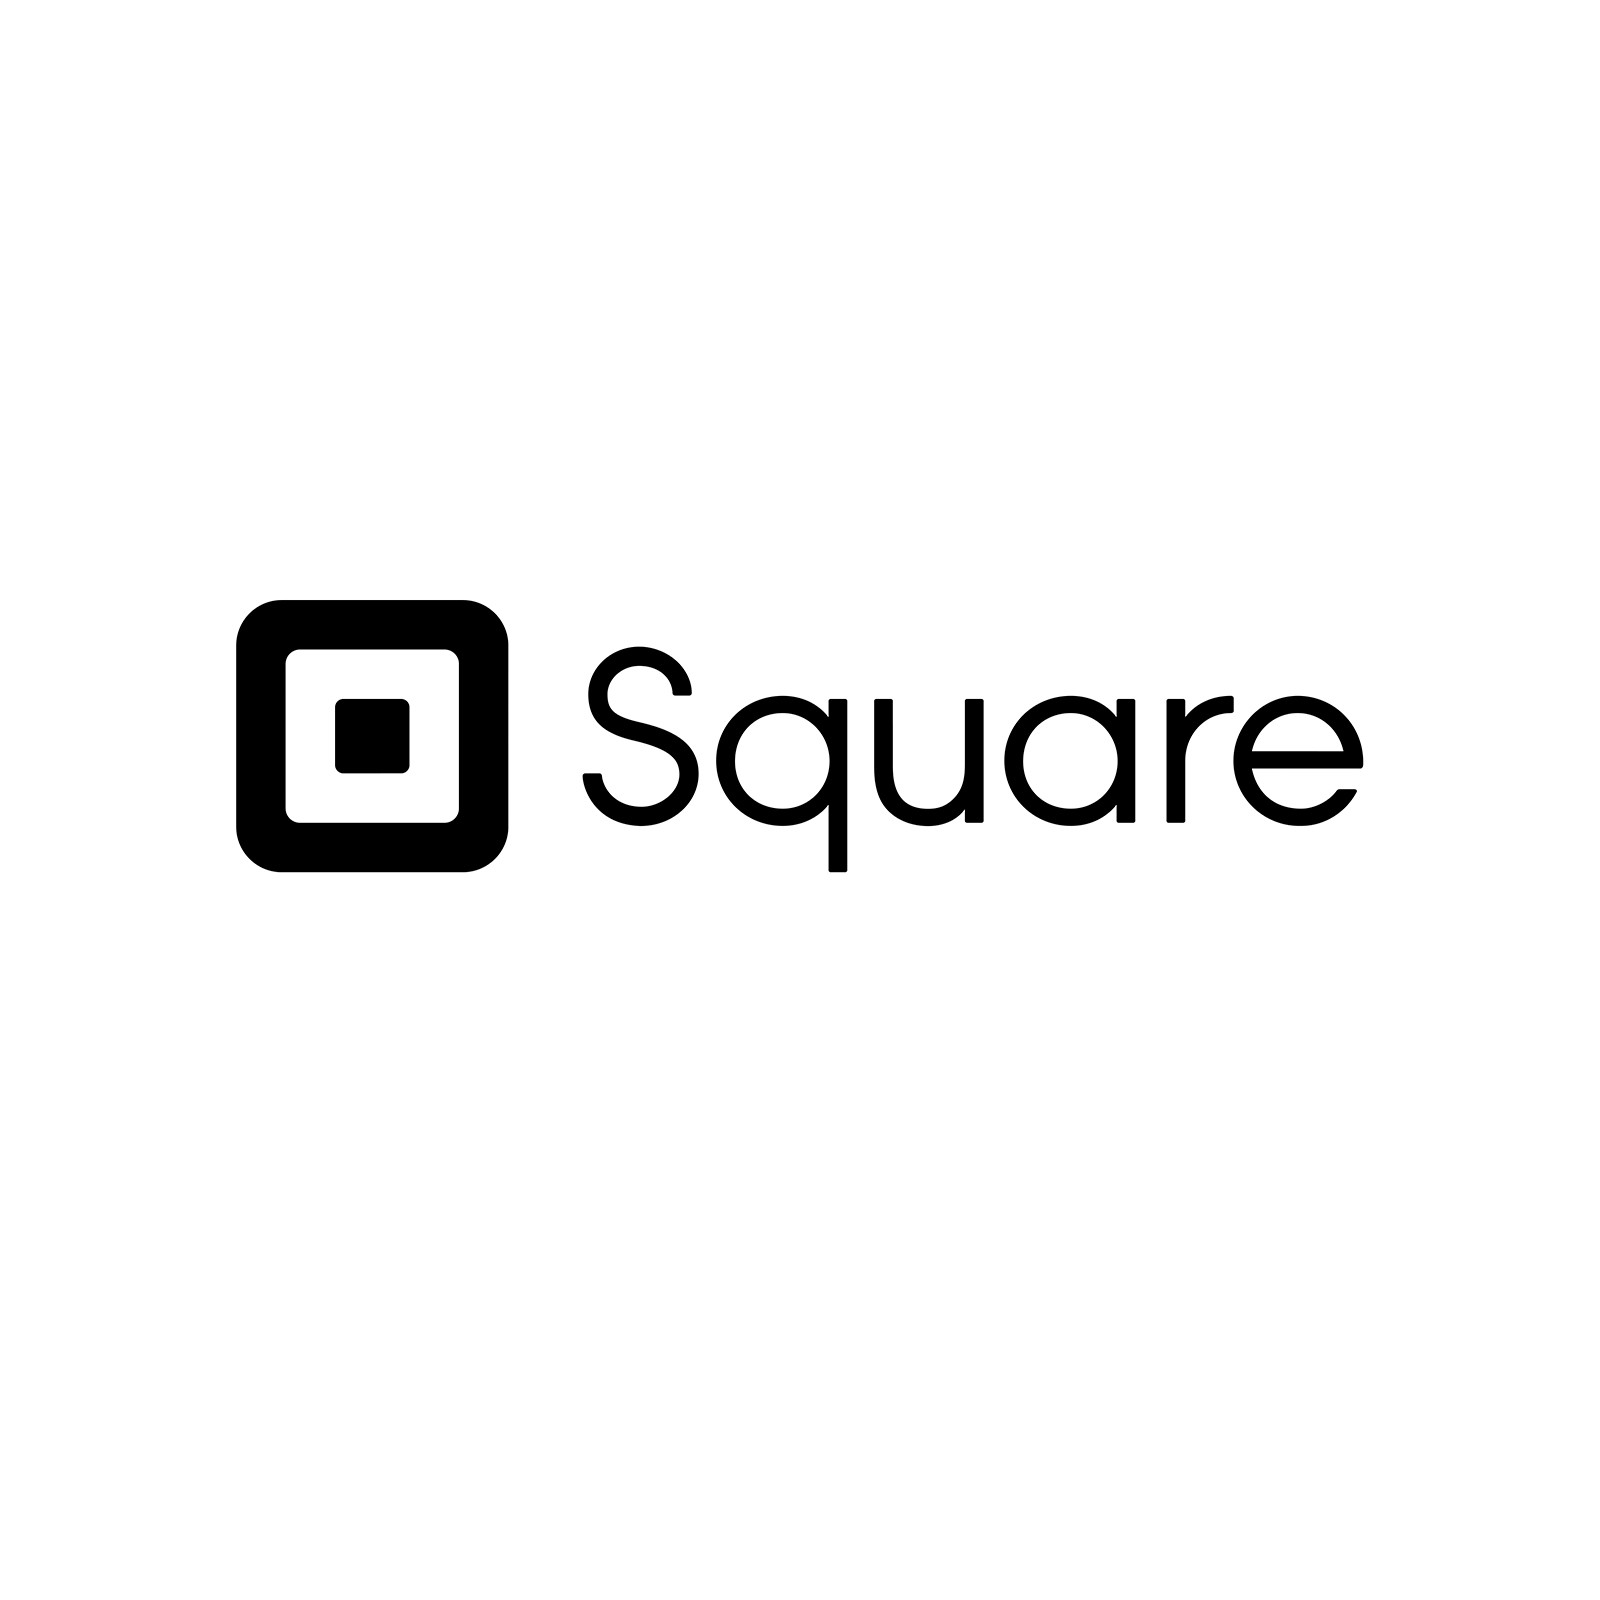 Square Logo - File:Square-logo-black.jpeg - Wikimedia Commons